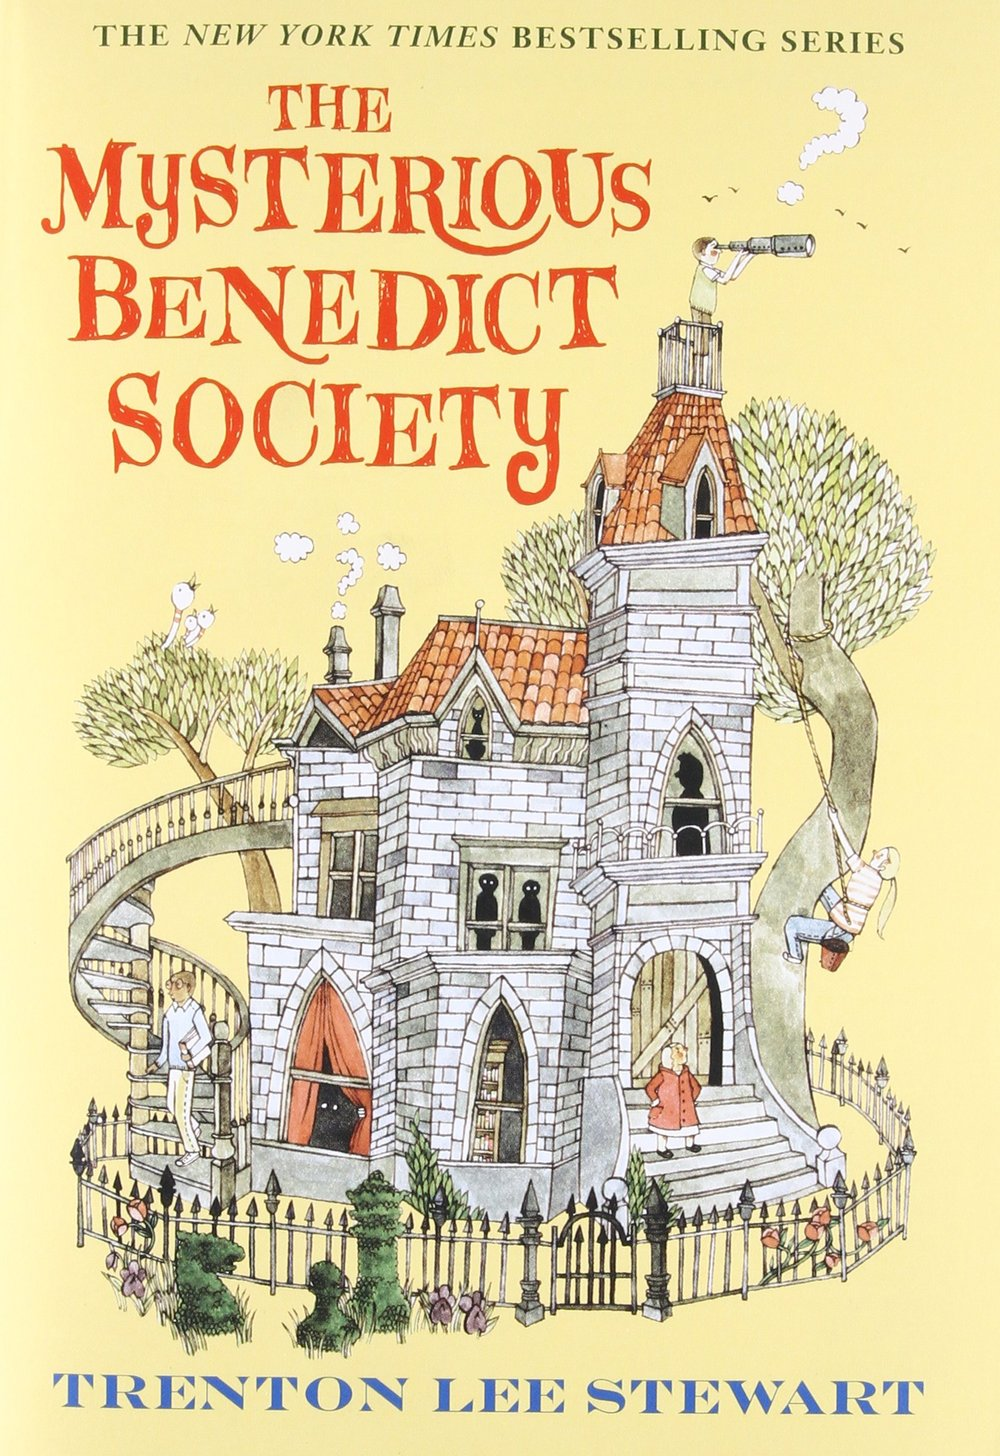 """""""In a city called Stonetown, near a port called Stonetown Harbor, a boy named Reynie Muldoon was preparing to take an important test."""" - -First sentence of The Mysterious Benedict Society by Trenton Lee Stewart"""